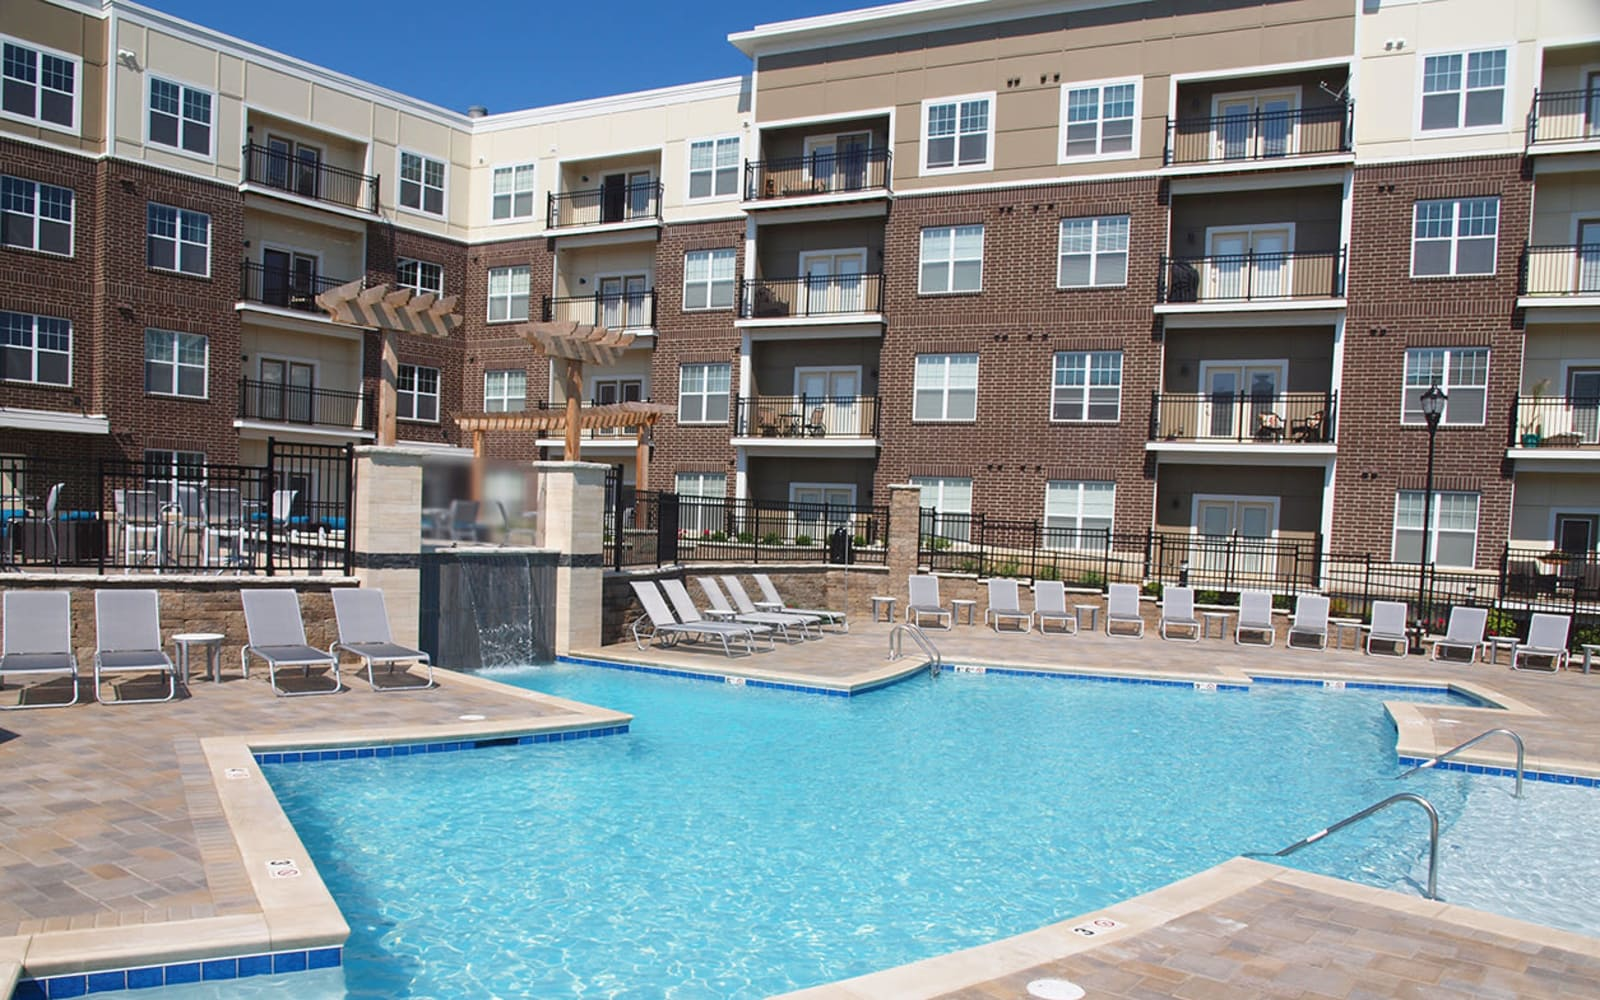 Swimming pool at Allure Apartments in Centerville, Ohio